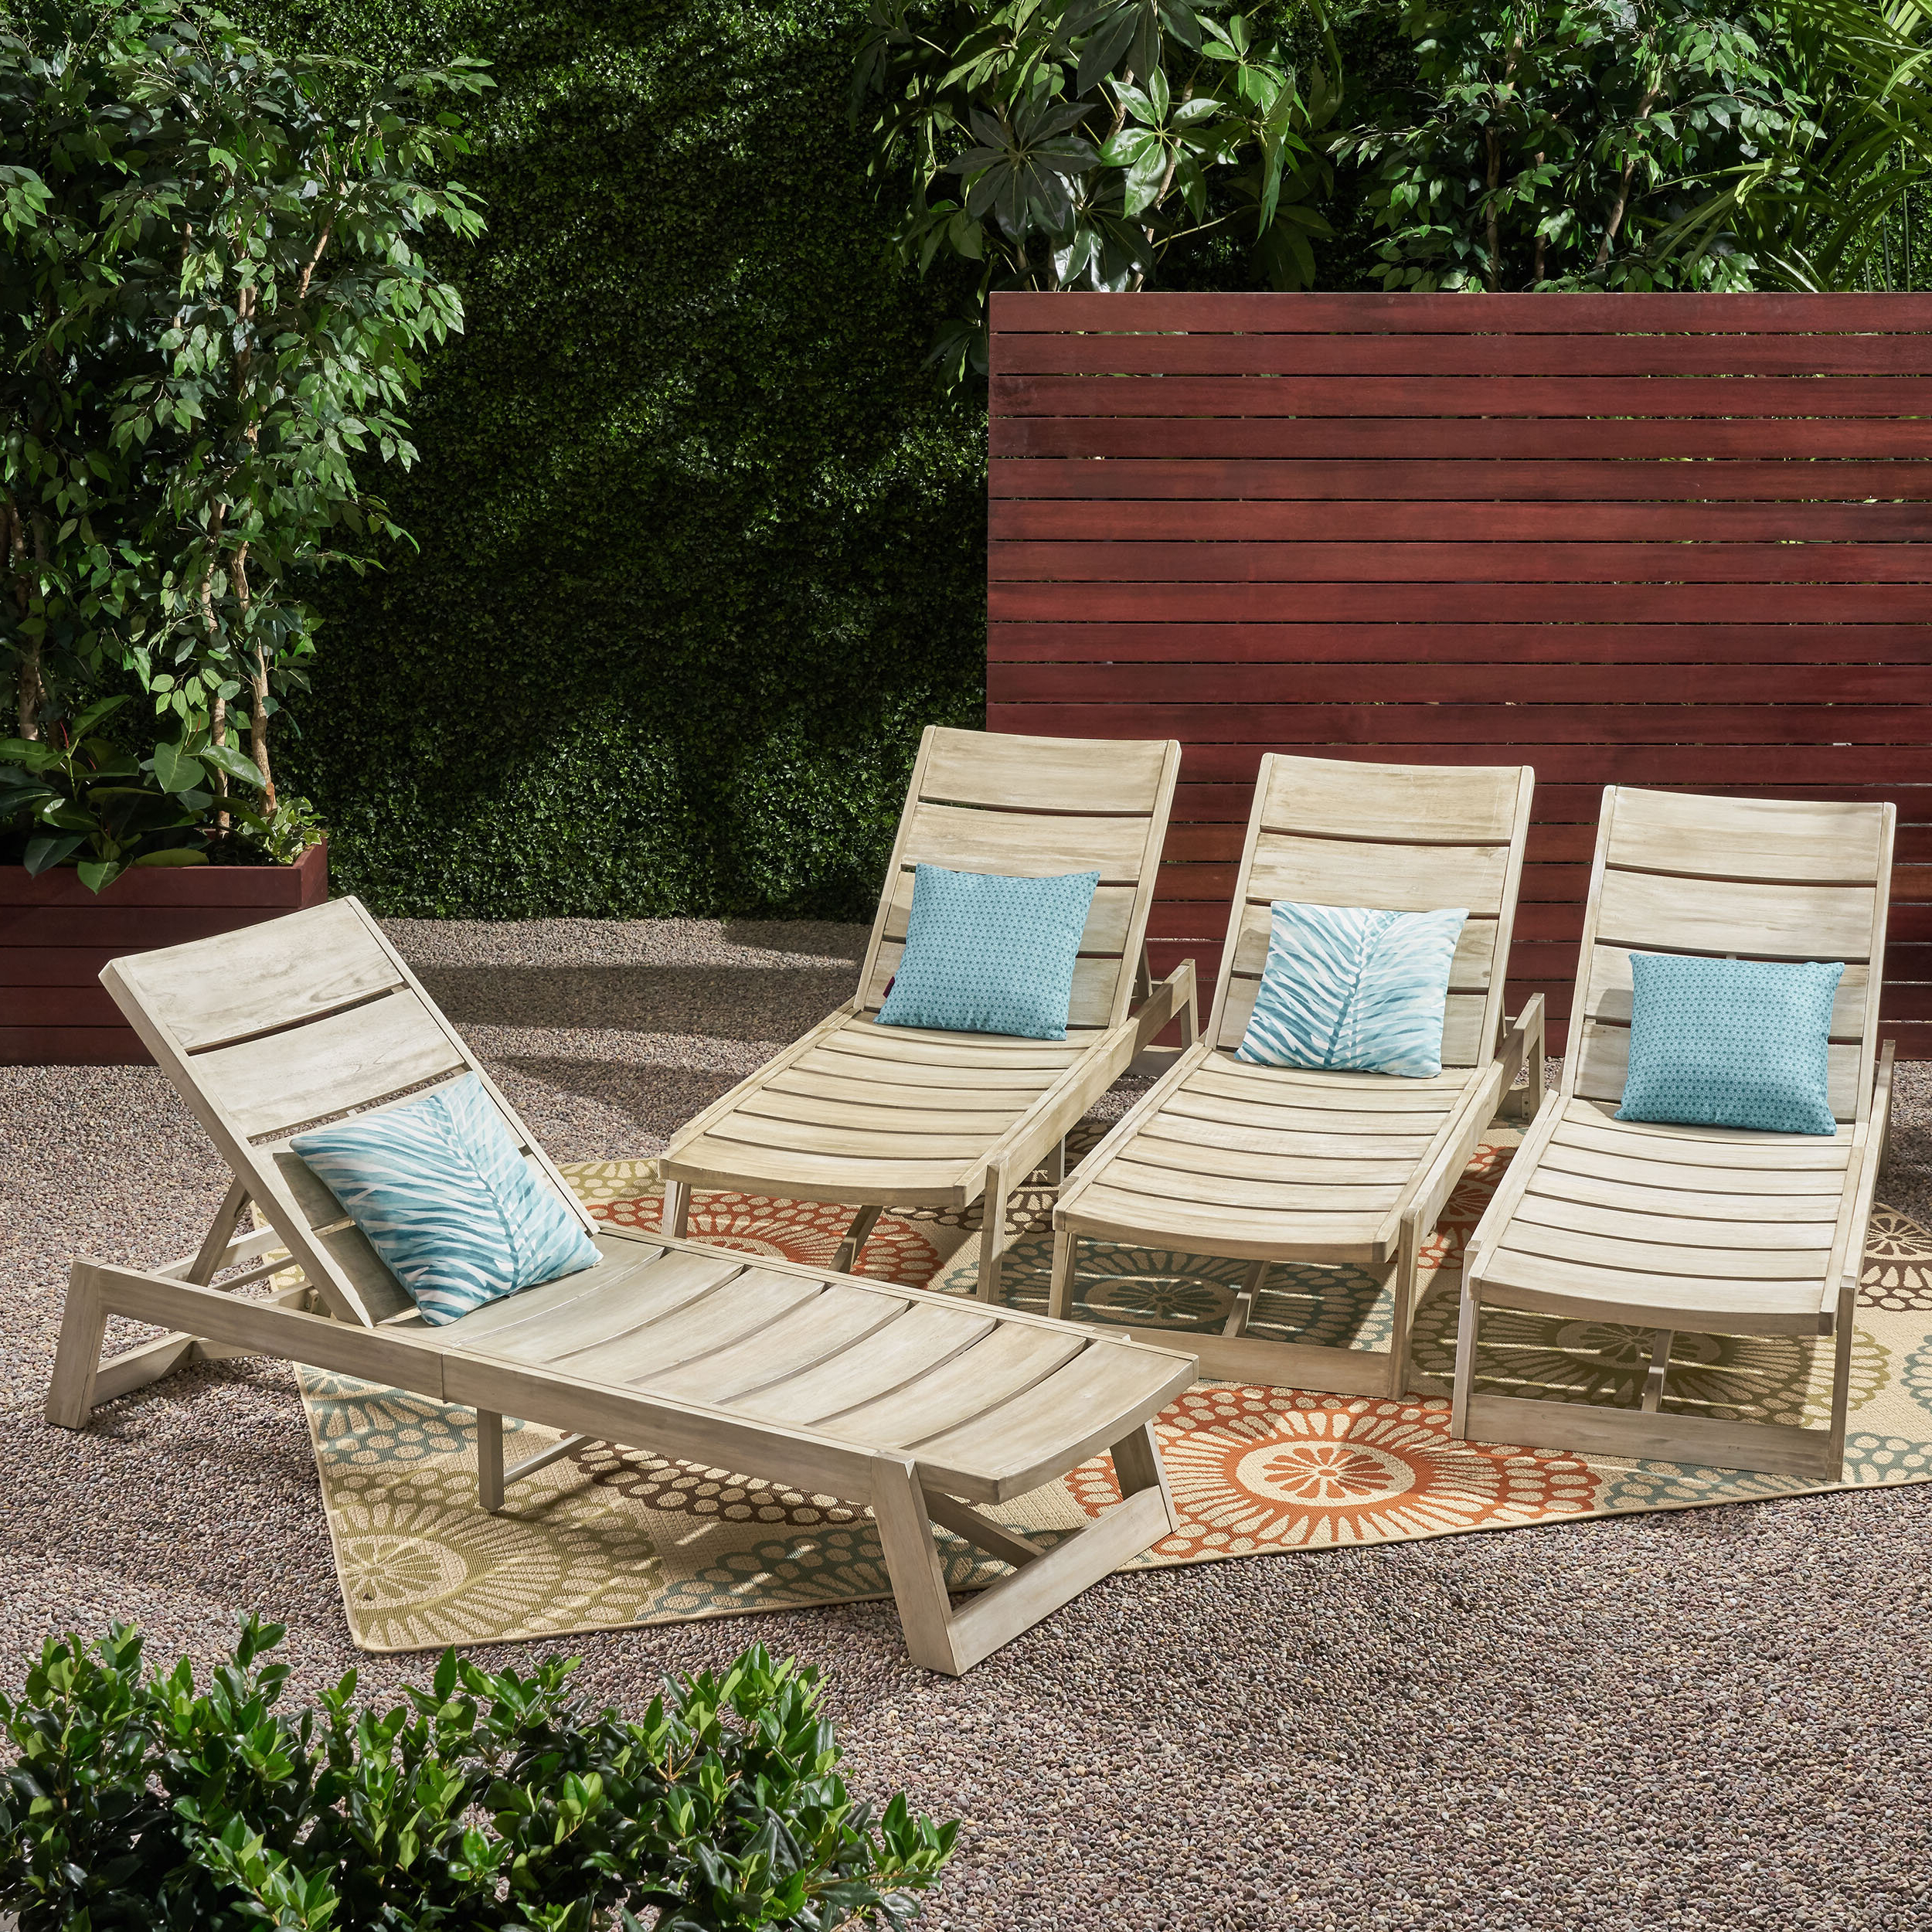 Well Known Outdoor Rustic Acacia Wood Chaise Lounges With Wicker Seat For Nowakowski Acacia Wood Reclining Chaise Lounge (View 19 of 25)